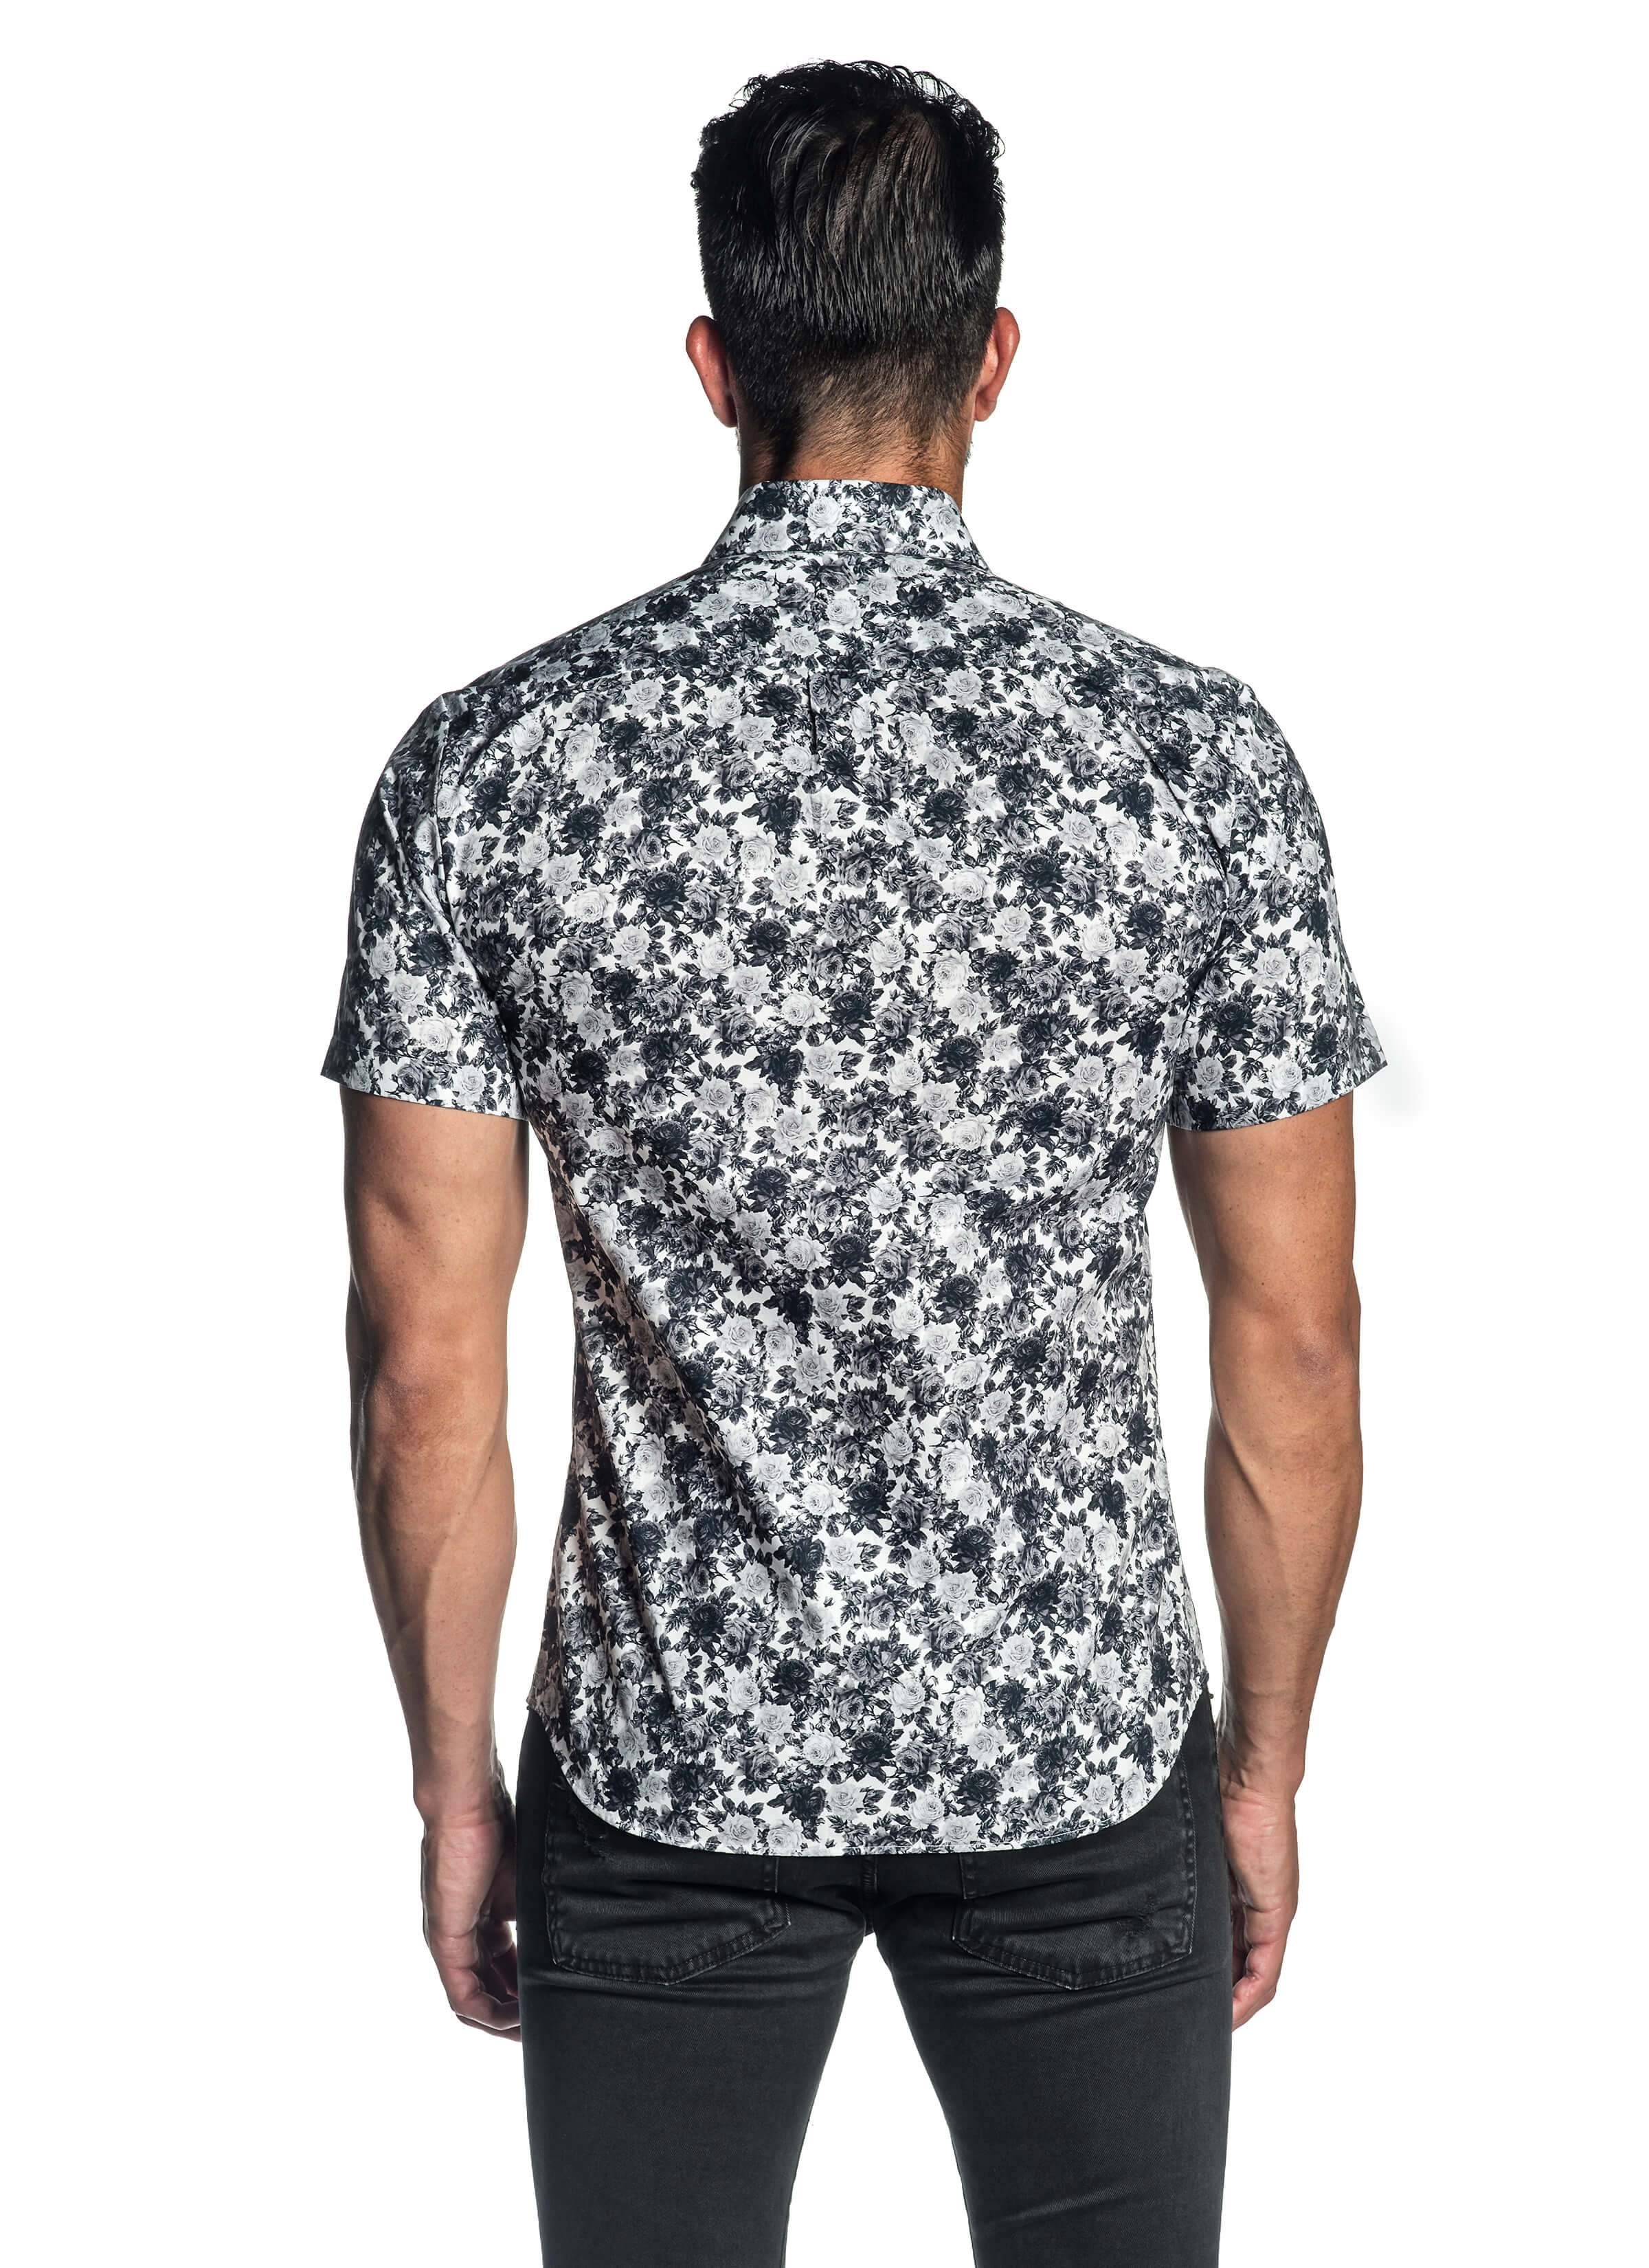 White and Grey Floral Short Sleeve Shirt for Men AH-ITA-T-2106-SS - Back - Jared Lang